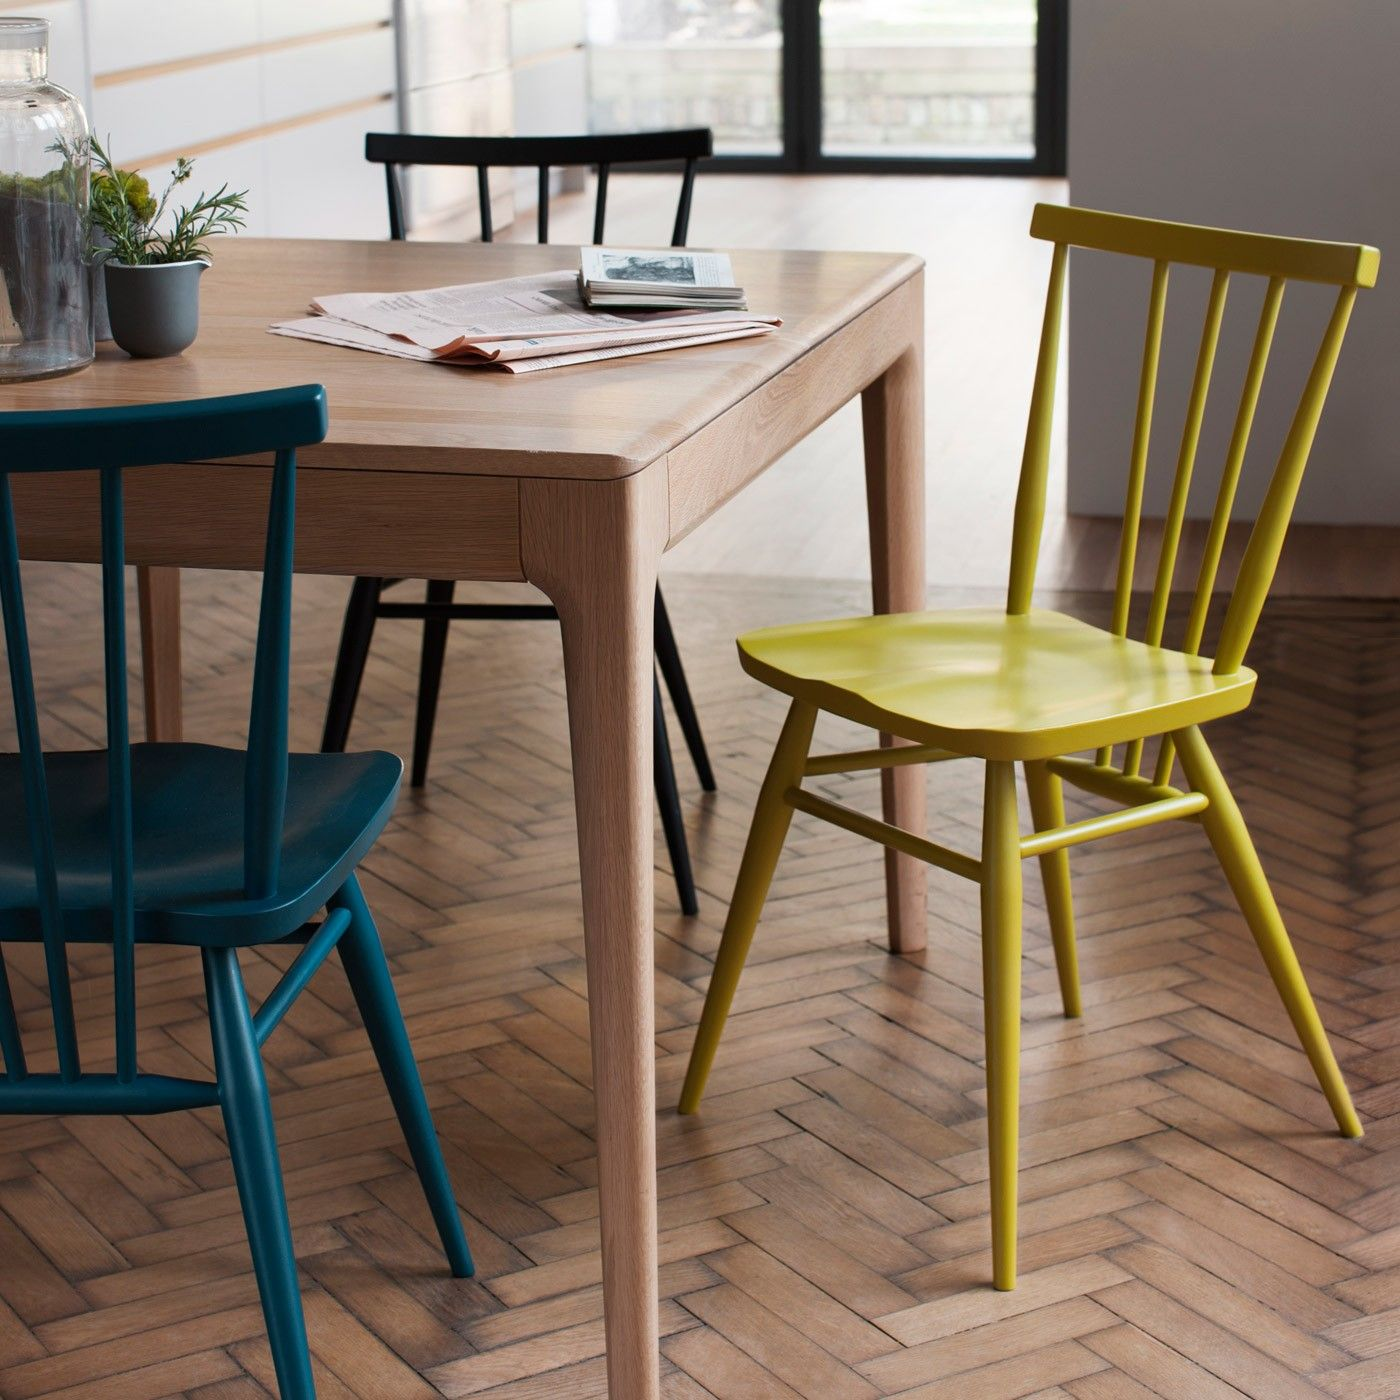 First Designedercol Founder Lucian Ercolani In The 1950S This Cool Second Hand Ercol Dining Room Furniture Decorating Inspiration